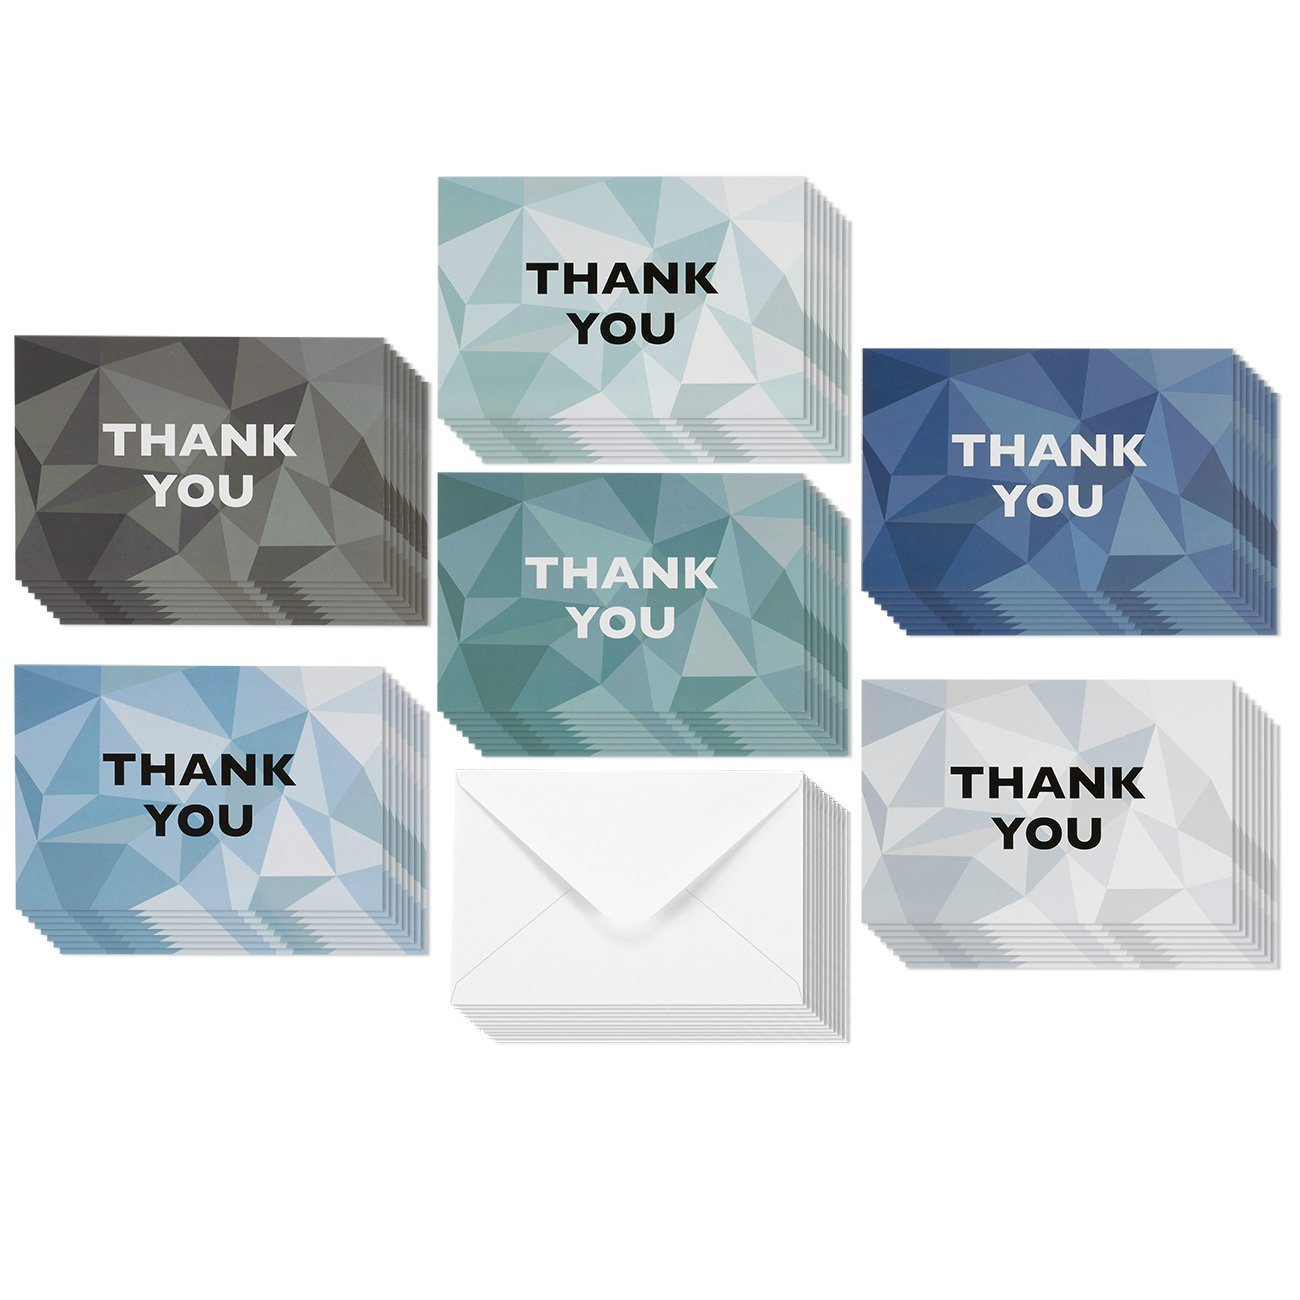 Thank You Cards - 48-Count Thank You Notes, Bulk Thank You Cards Set - Blank on the Inside, 6 Stained Glass Pattern Designs – Includes Thank You Cards and Envelopes, 4 x 6 Inches by Best Paper Greetings (Image #5)